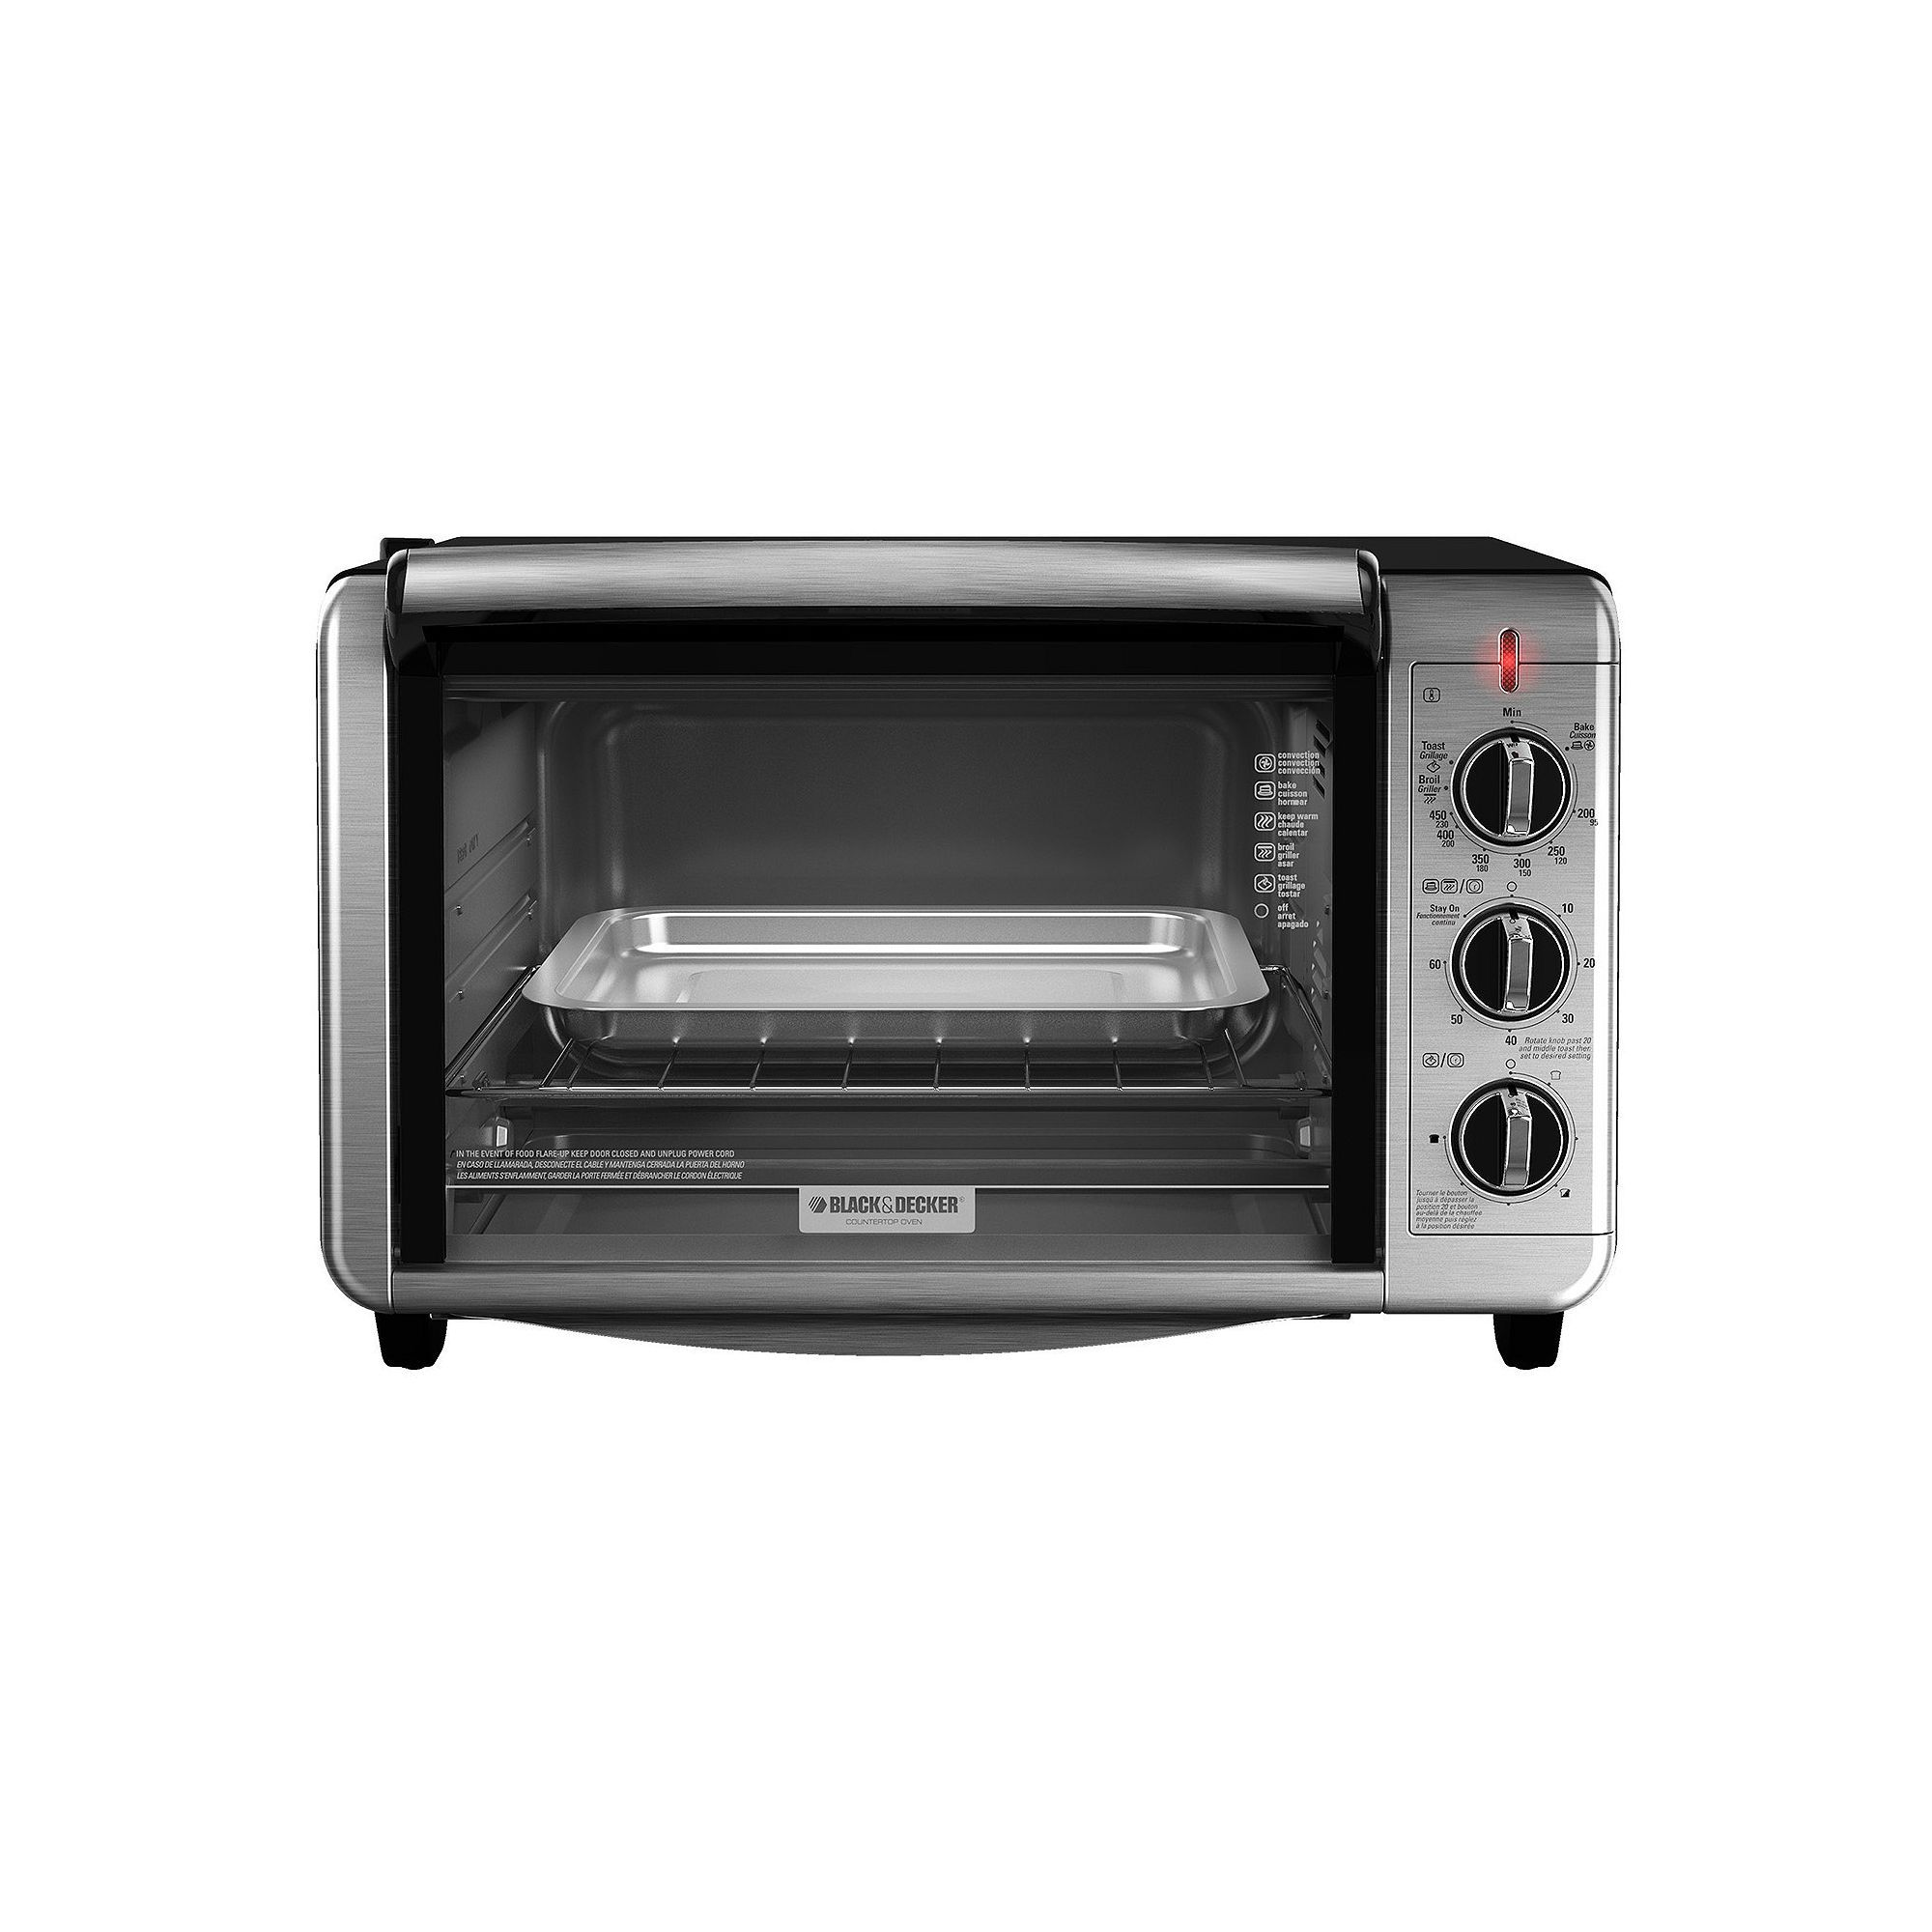 Black Decker Dining In Countertop Convection Oven Multicolor Convection Toaster Oven Countertop Convection Oven Toaster Oven